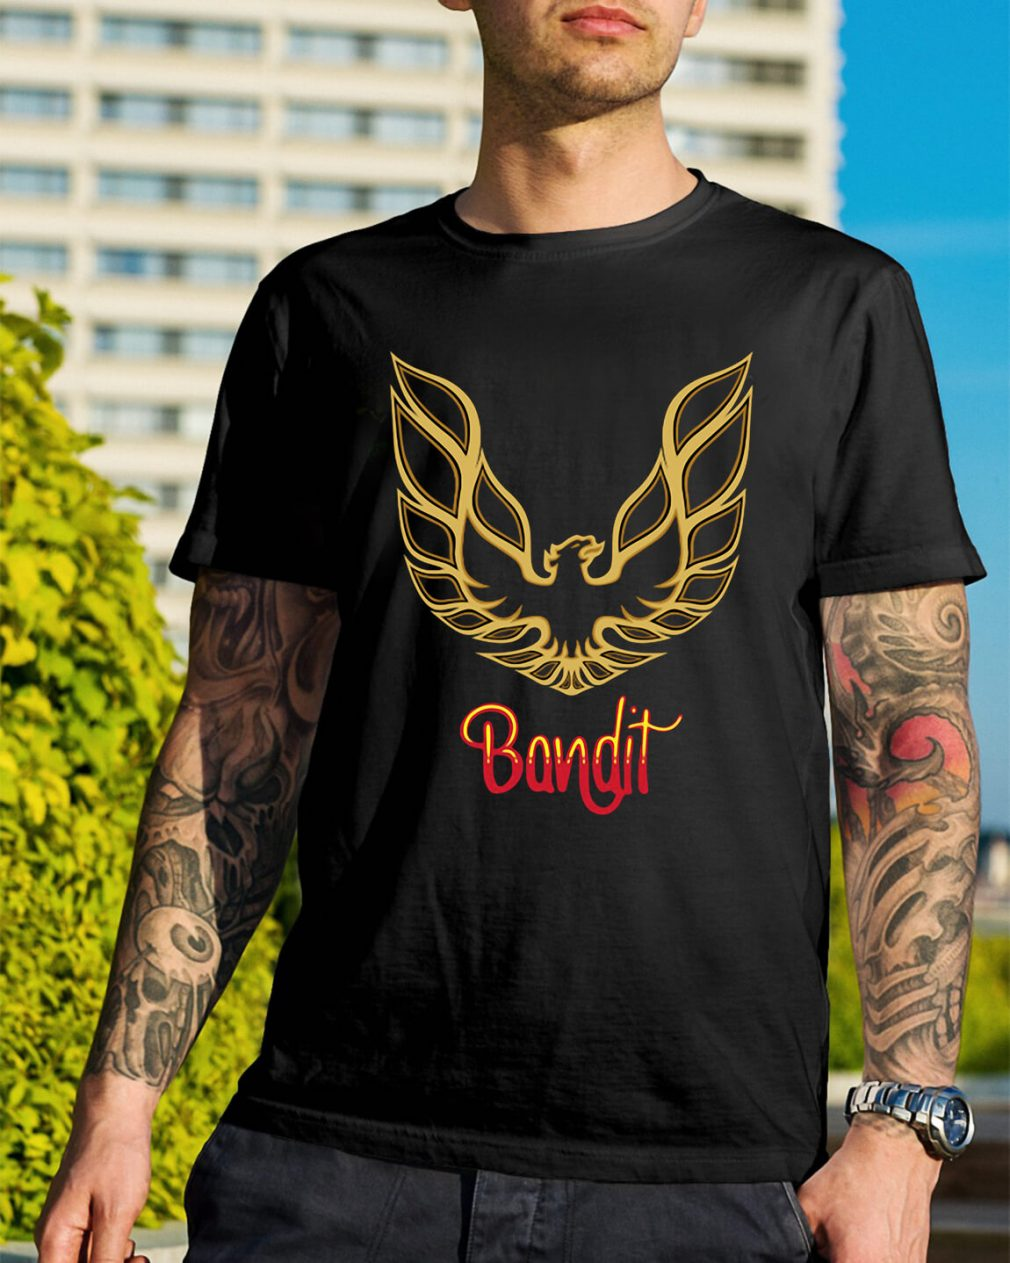 The Bandit eagle shirt